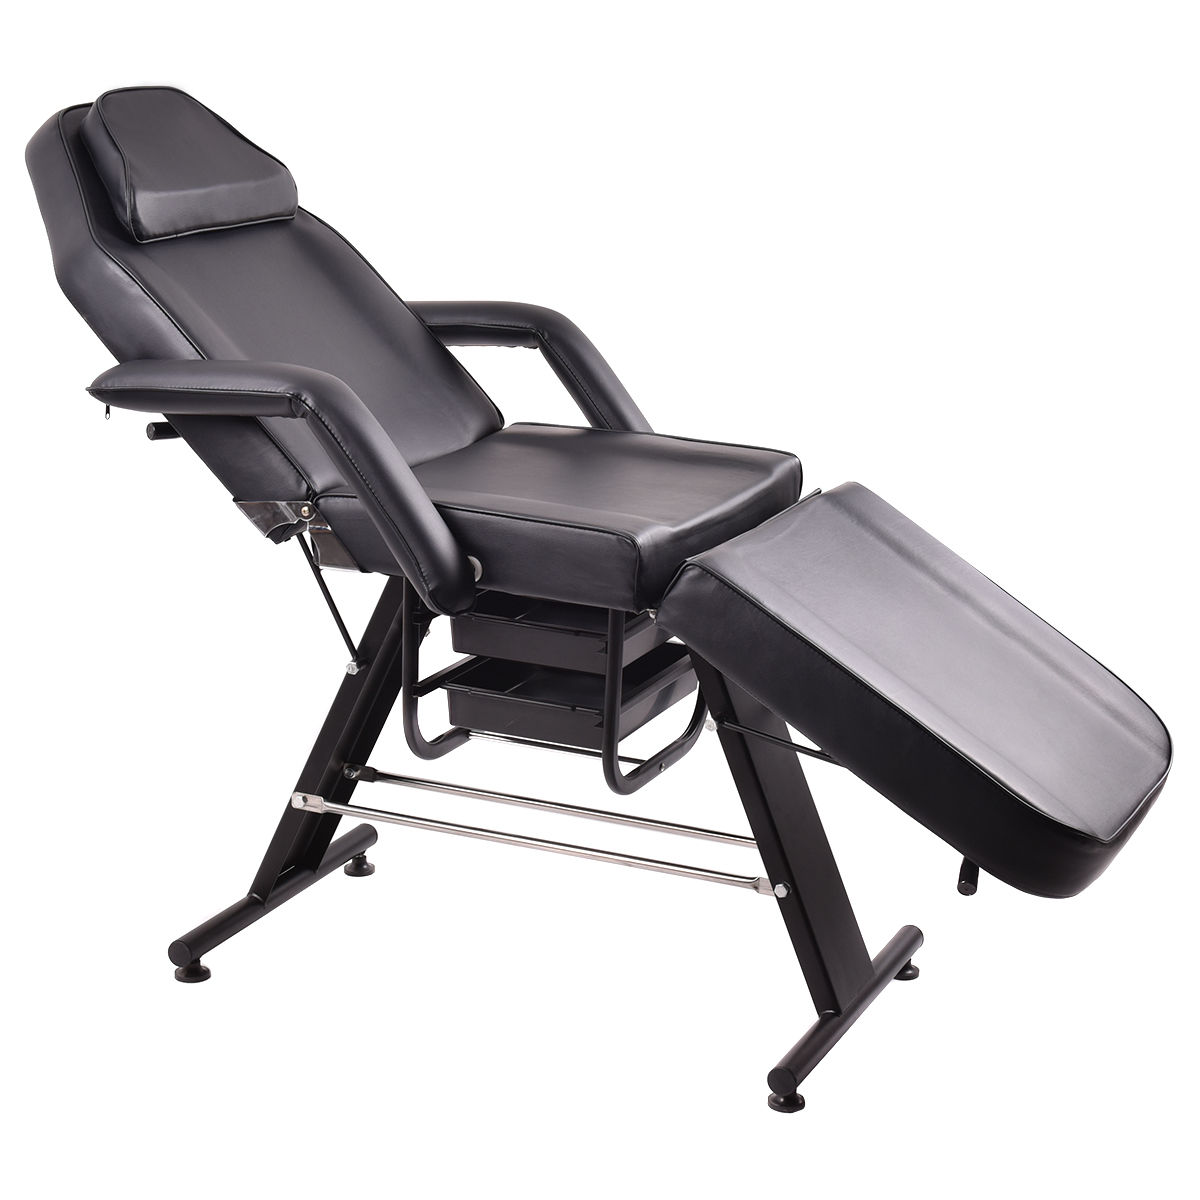 Costway Adjustable Salon SPA Black Massage Bed Tattoo Chair Facial Table  Beauty Basket